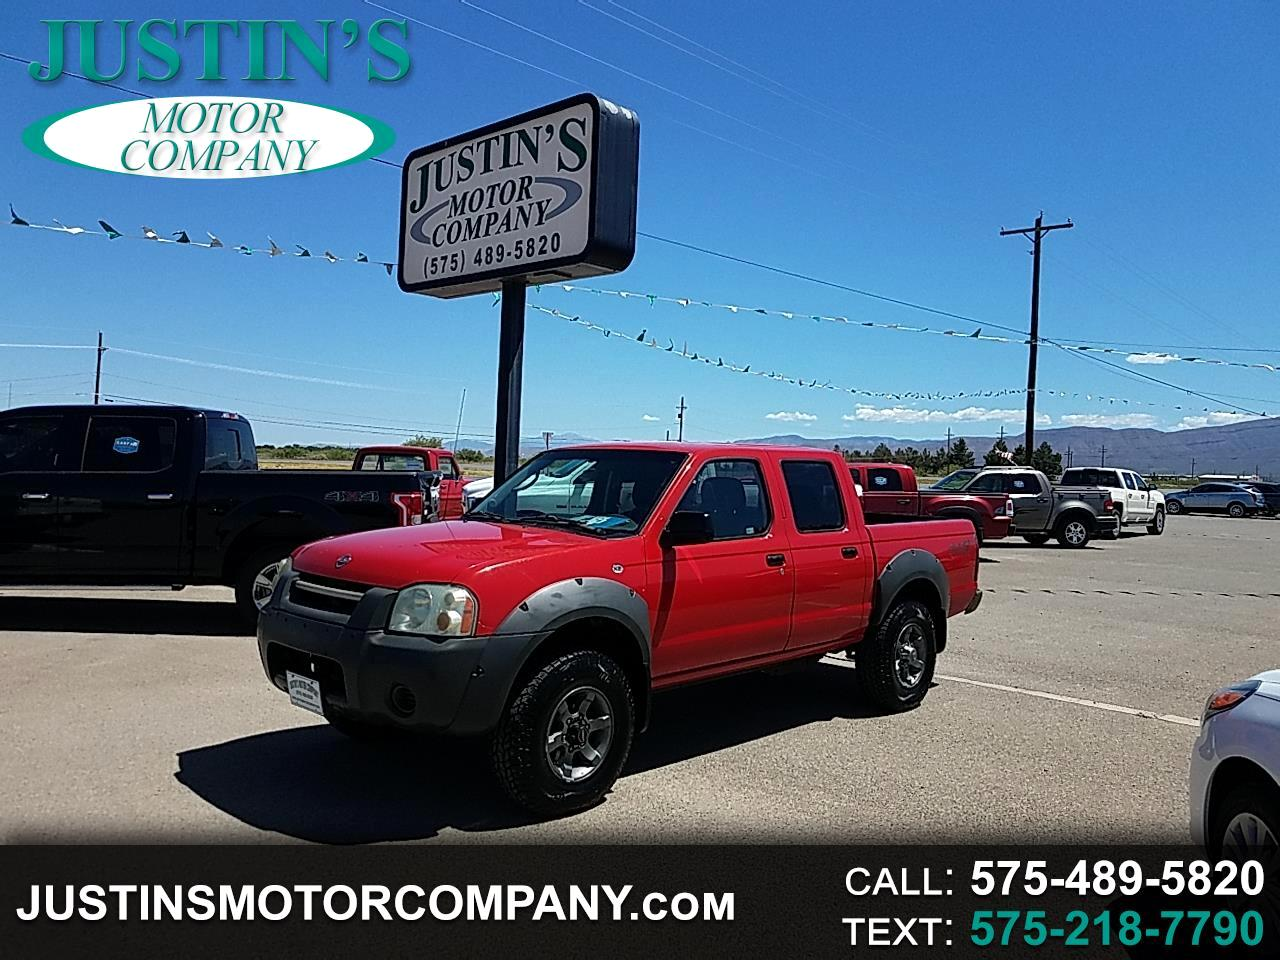 2002 Nissan Frontier 4WD XE Crew Cab V6 Manual Std Bed